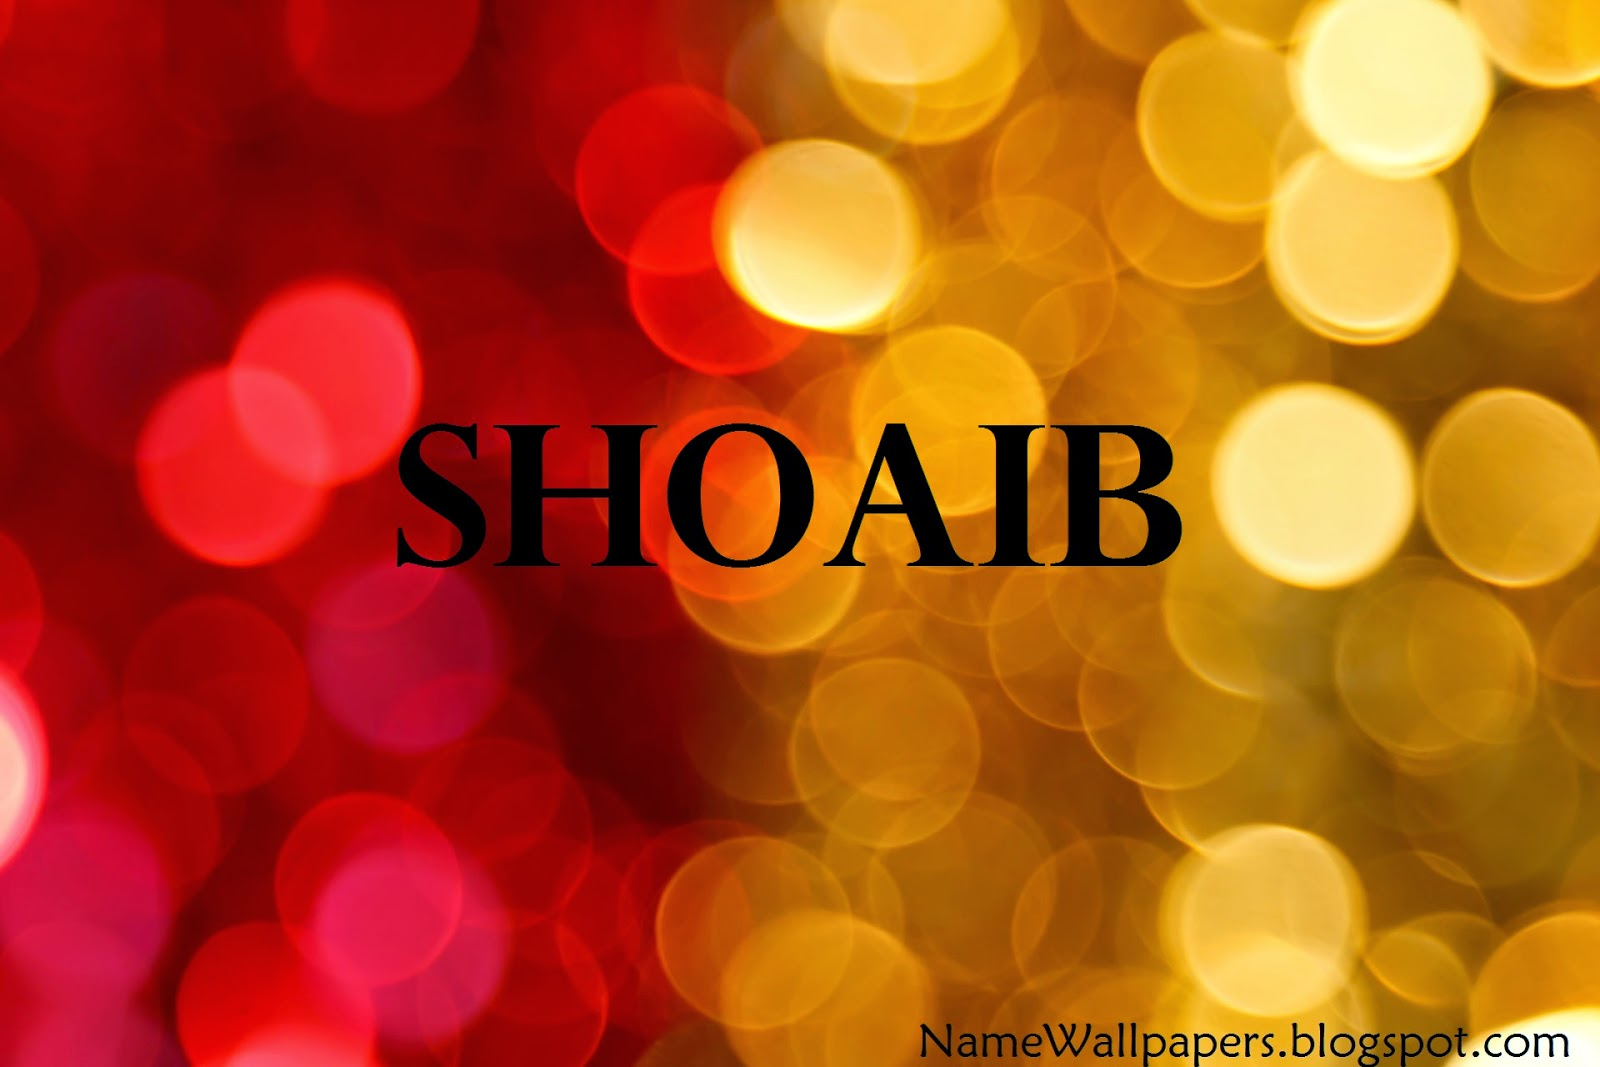 wallpaper name shoaib